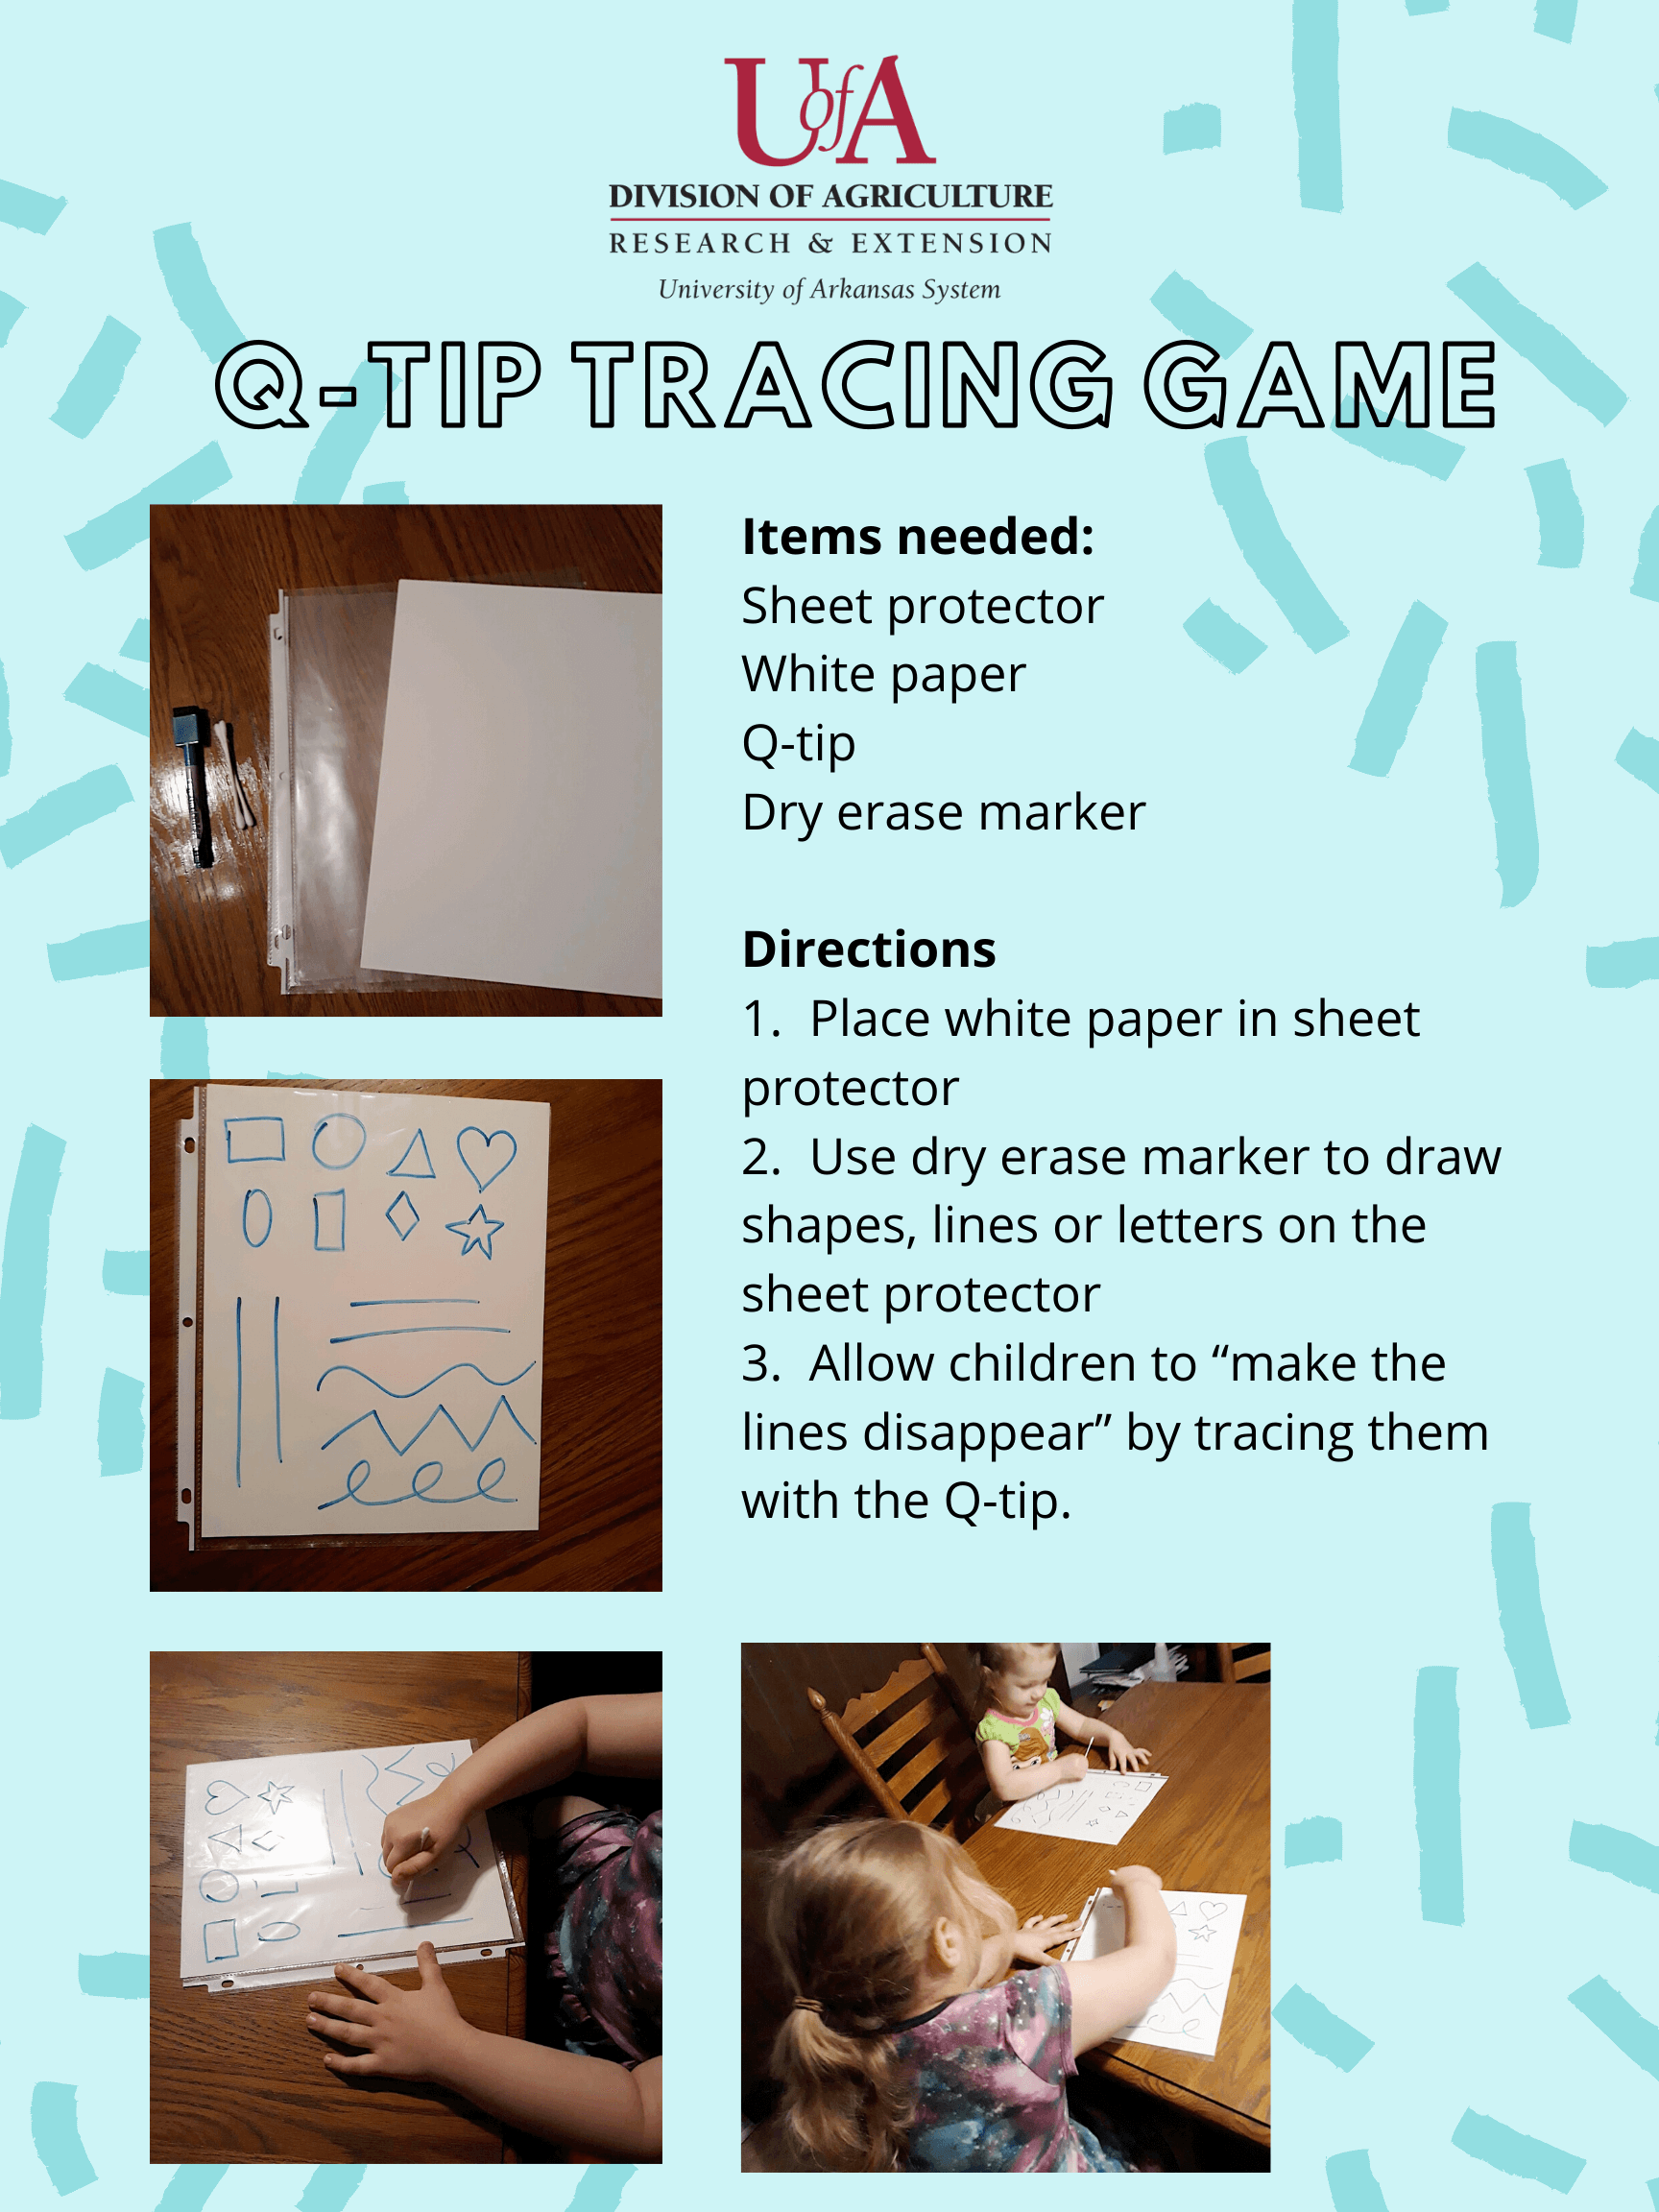 Q-Tip Tracing Activity: Place a white paper in a sheet protector. With a dry erase marker, draw lines, shapes or letters on the sheet protector. Allow children to make the lines disappear by tracing them wiht the Q-Tip